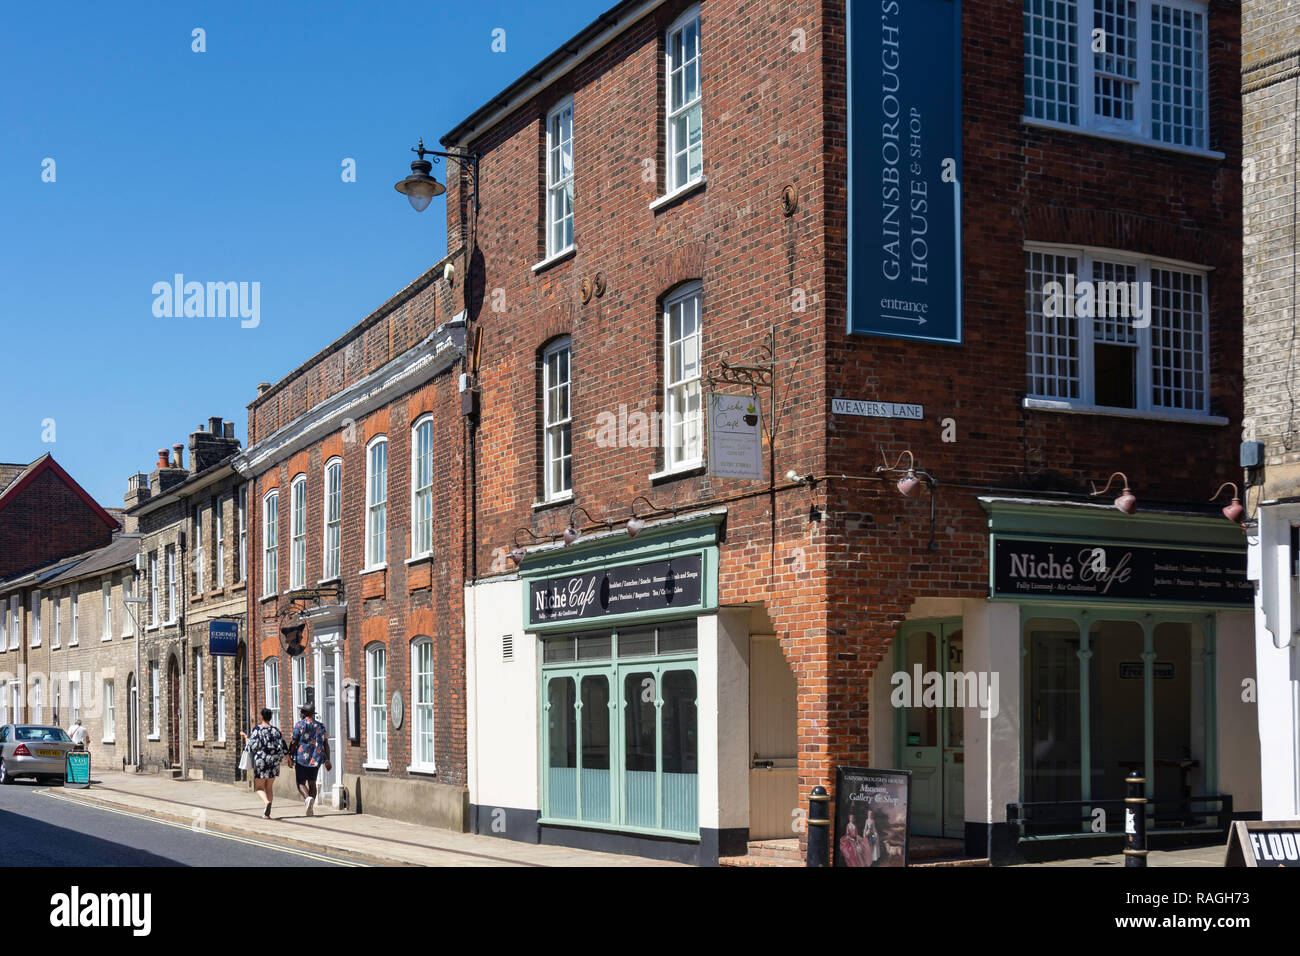 Gainsborough's House, Gainsborough Street, Sudbury, Suffolk, England, United Kingdom - Stock Image